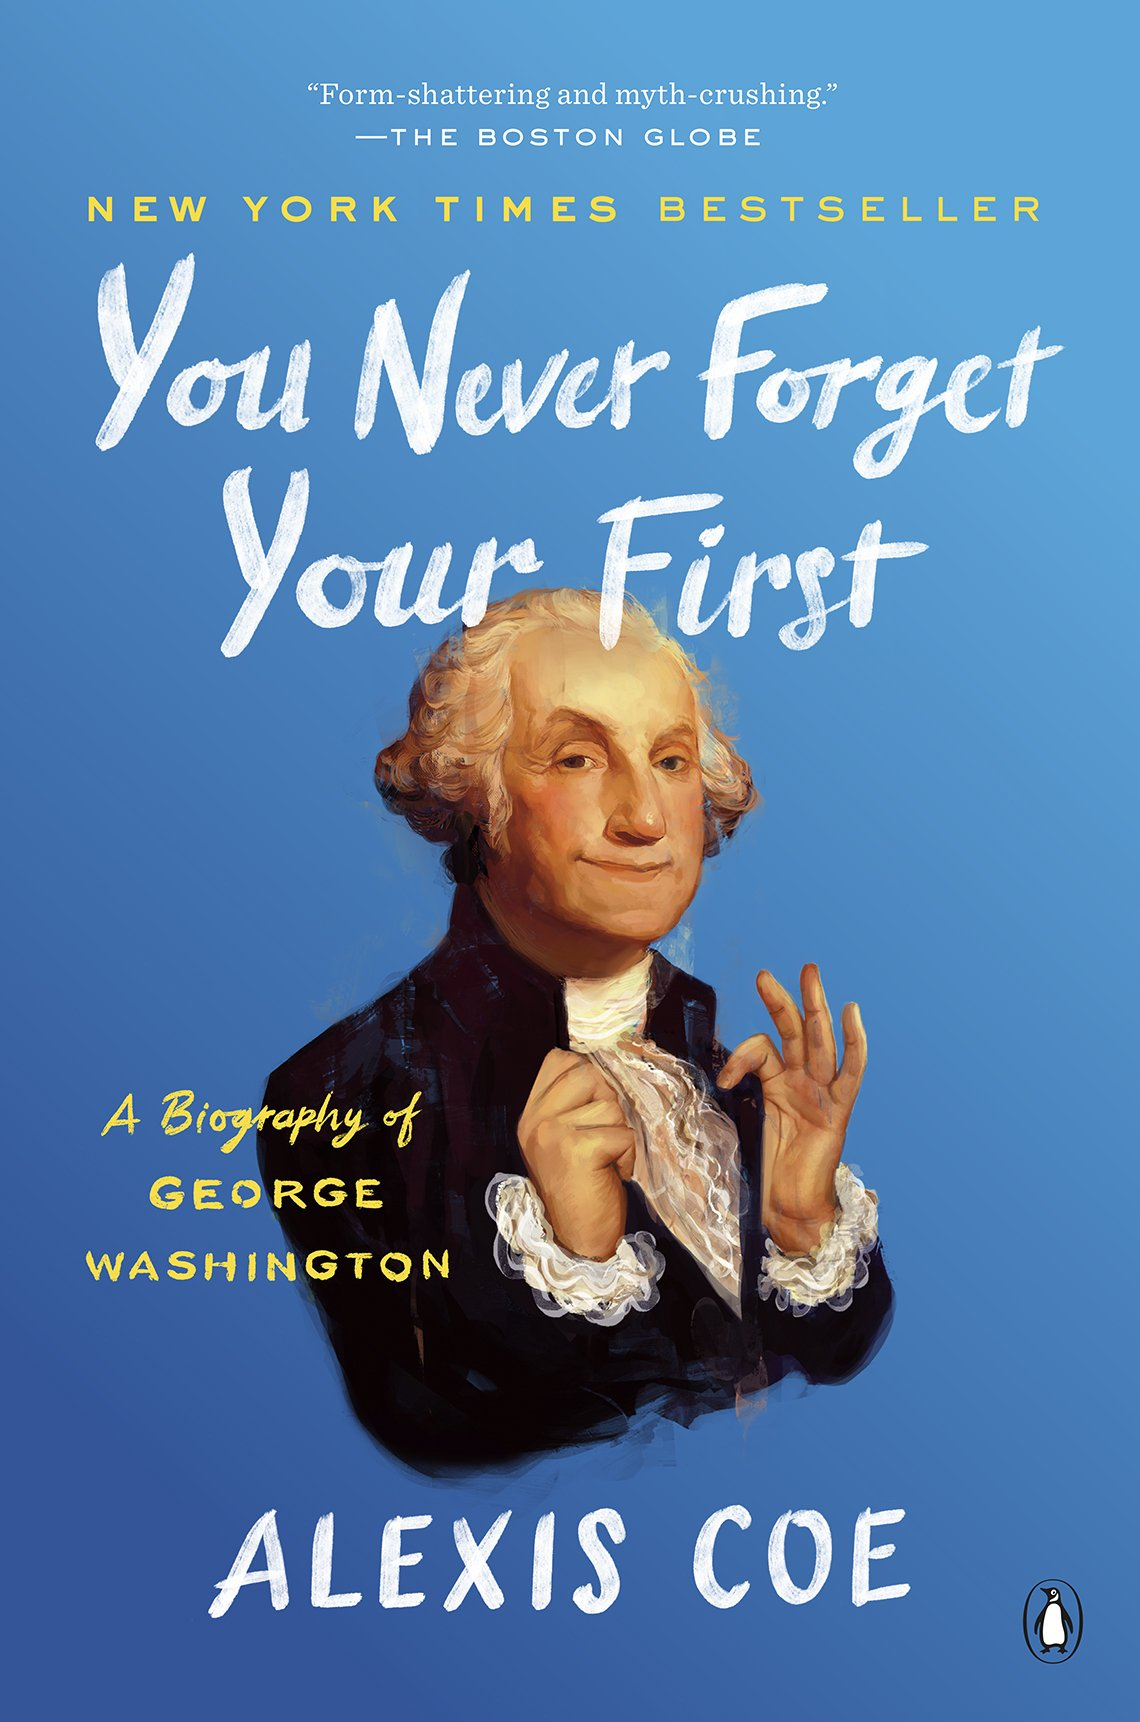 You Never Forget Your First; A Biography of George Washington, por Alexis Coe.